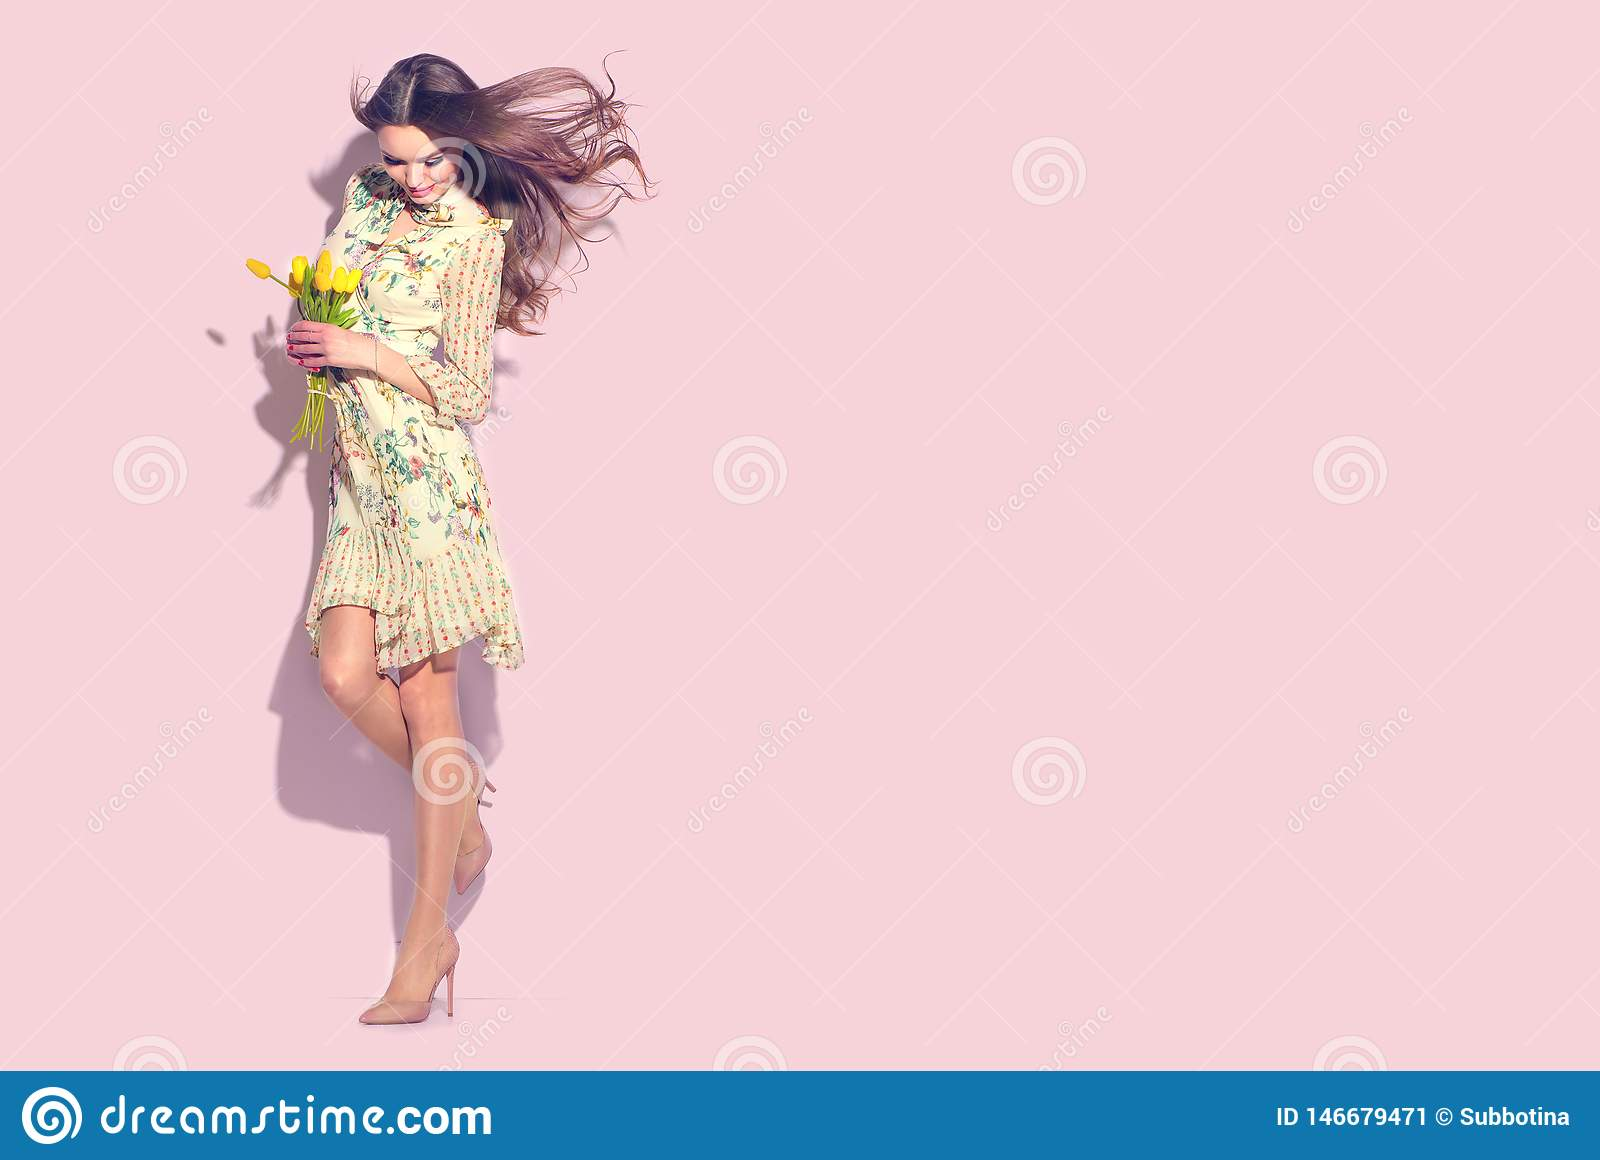 Beauty glamour girl with spring tulip flowers. Beautiful young woman posing with bouquet of tulips. Model wearing chiffon dress